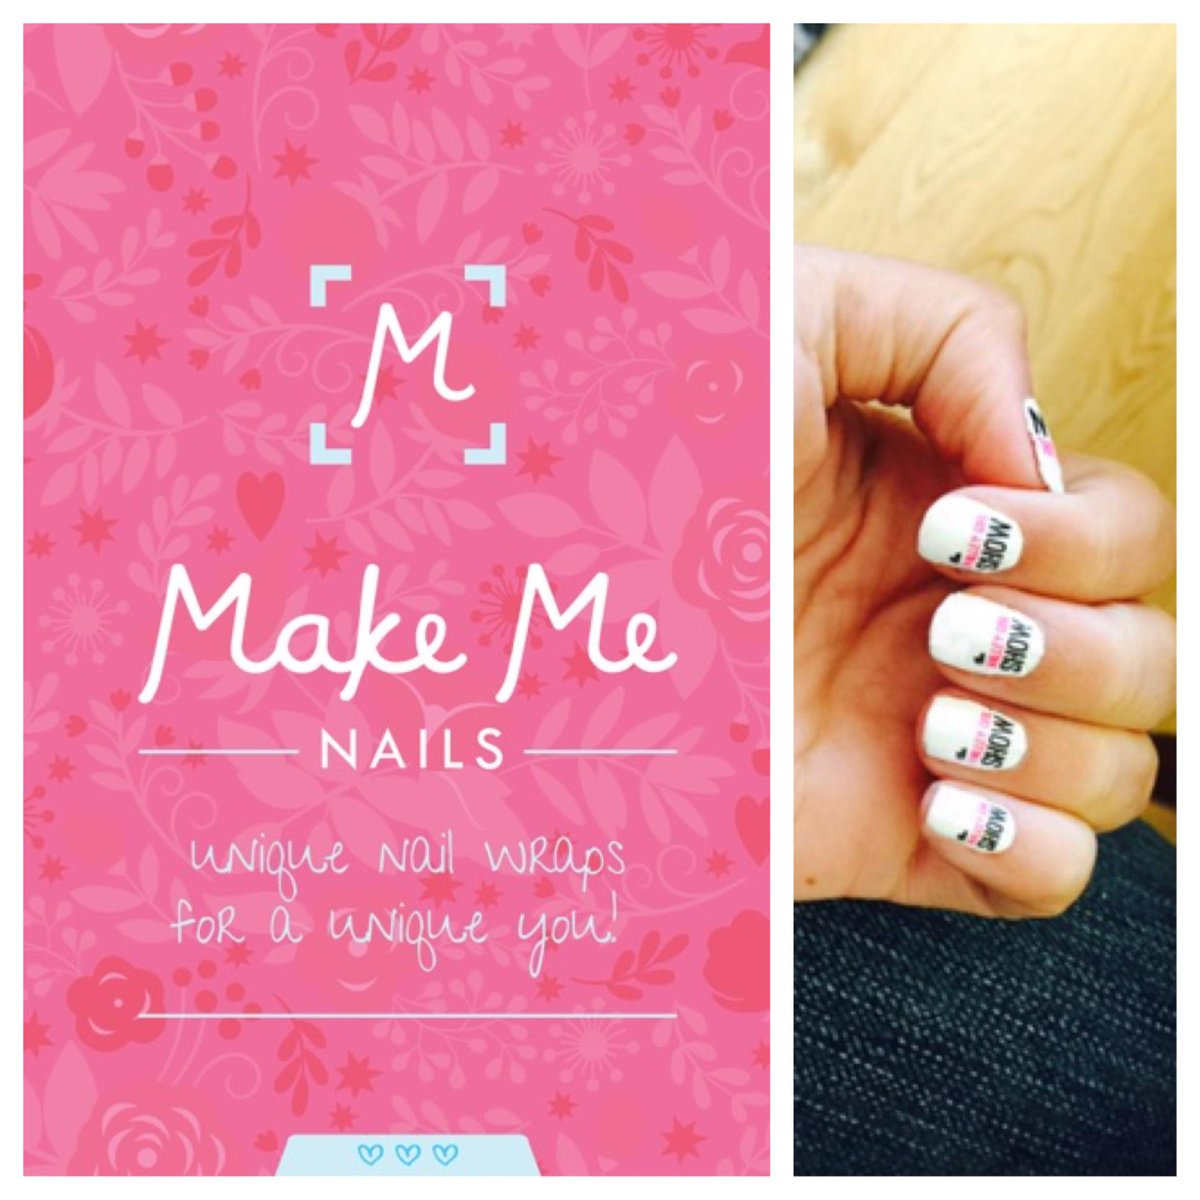 Check out our @MakeMeOfficial nail wraps, app launched 2 weeks ago & we're OBSESSED! #NeverTakingThemOff #TechTuesday http://t.co/3qn2aDbqOg